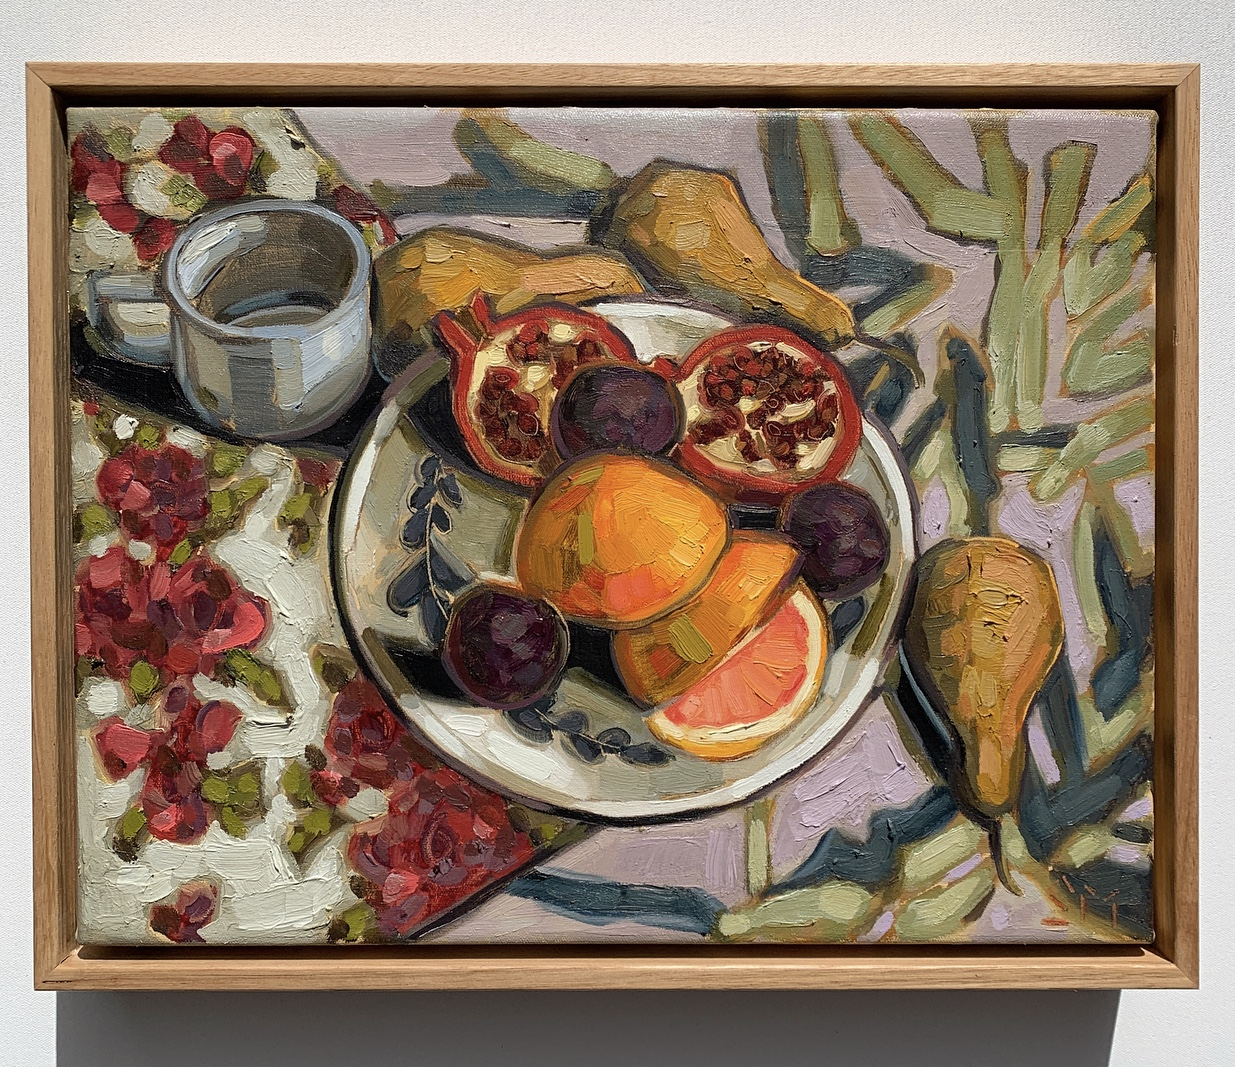 sam michelle 'fruits, tea & table' 30x38